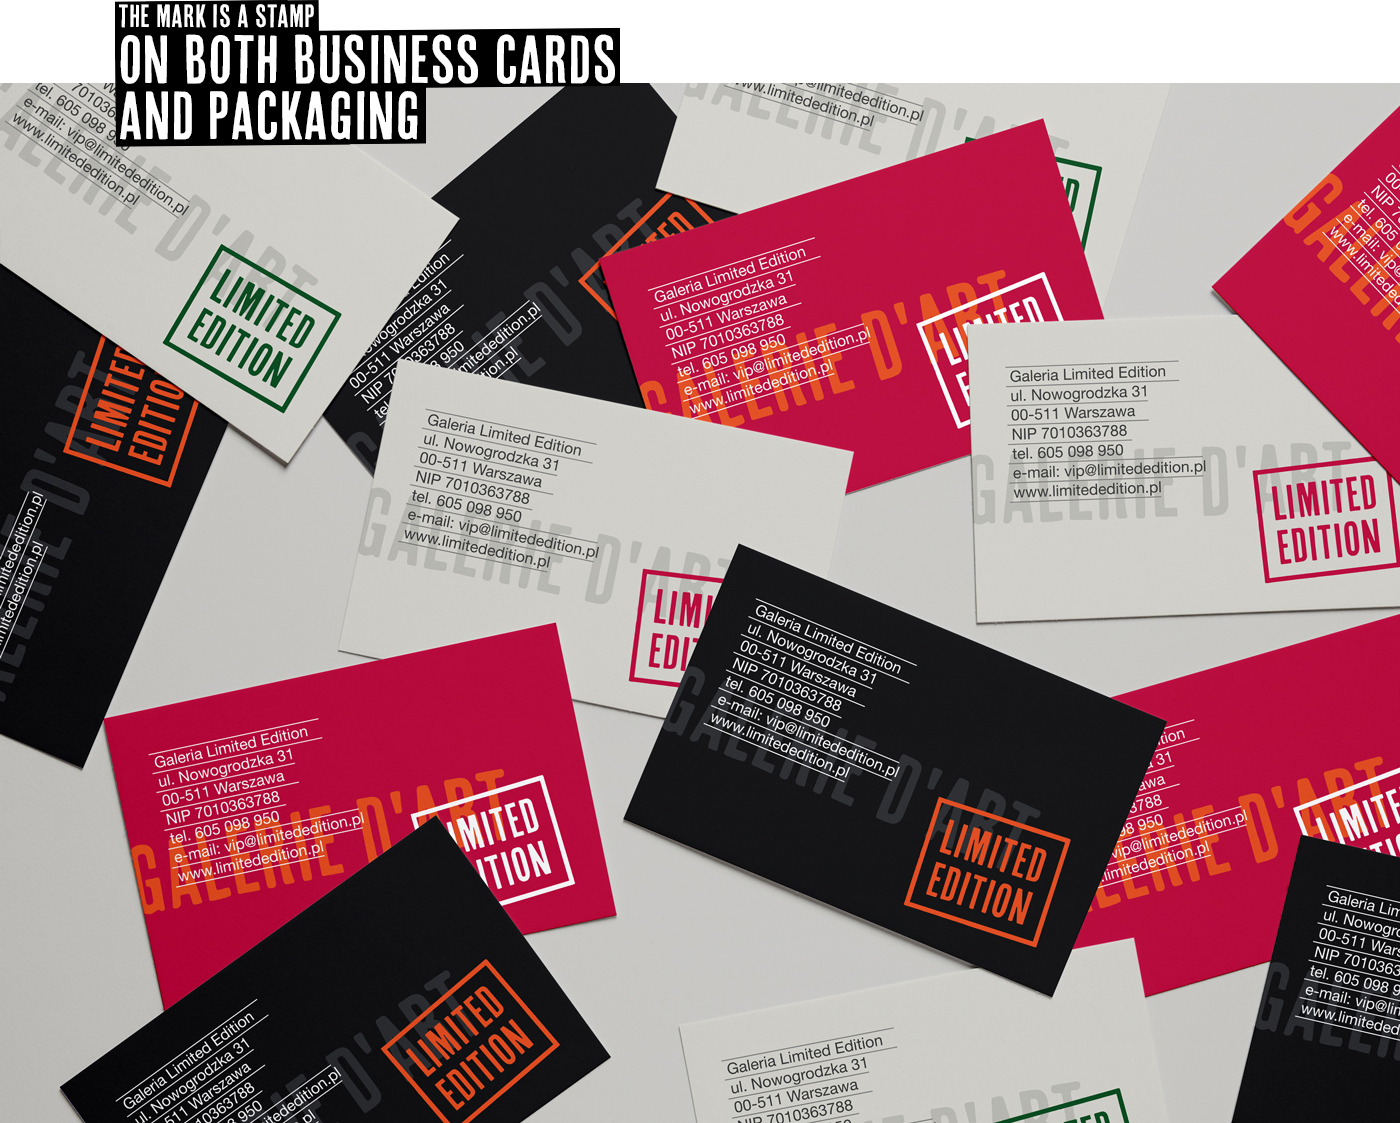 Media with a new visual identity for the Limited Edition art gallery - a business card